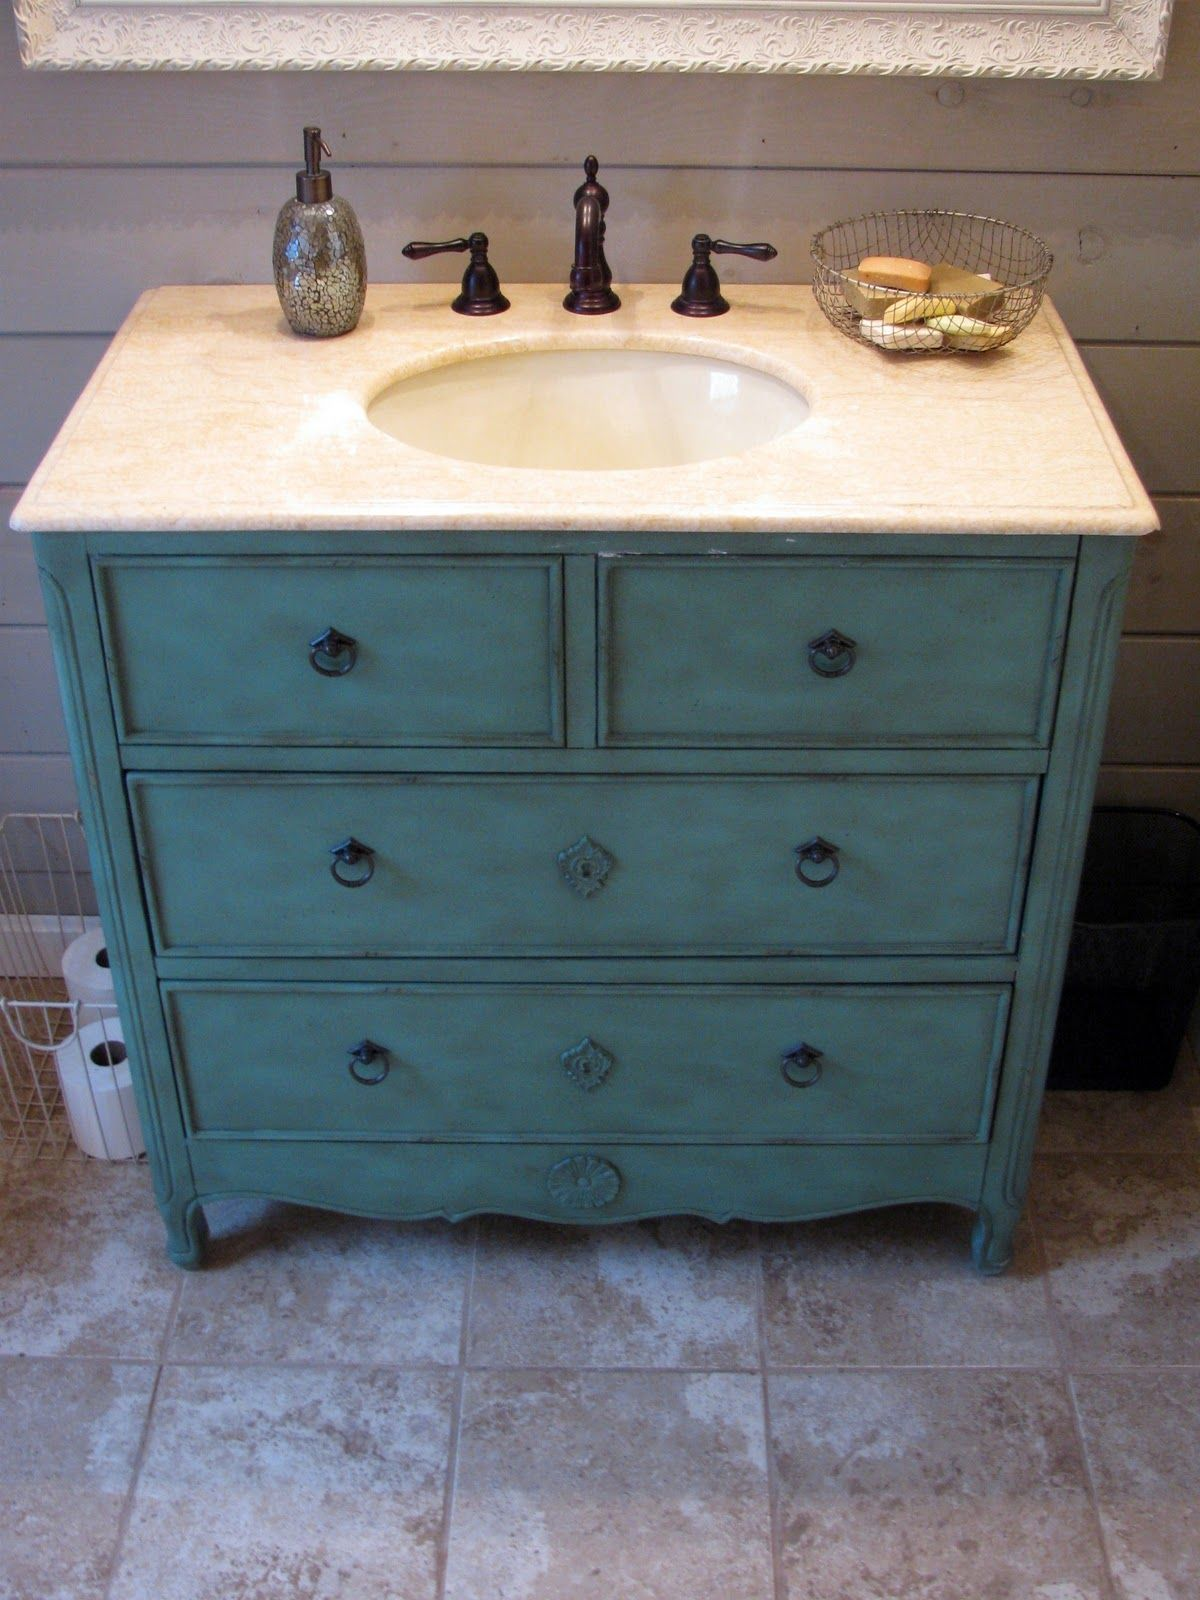 Renovation Salle De Bain Abbeville ~ idea like this style sink dresser make over new home ideas